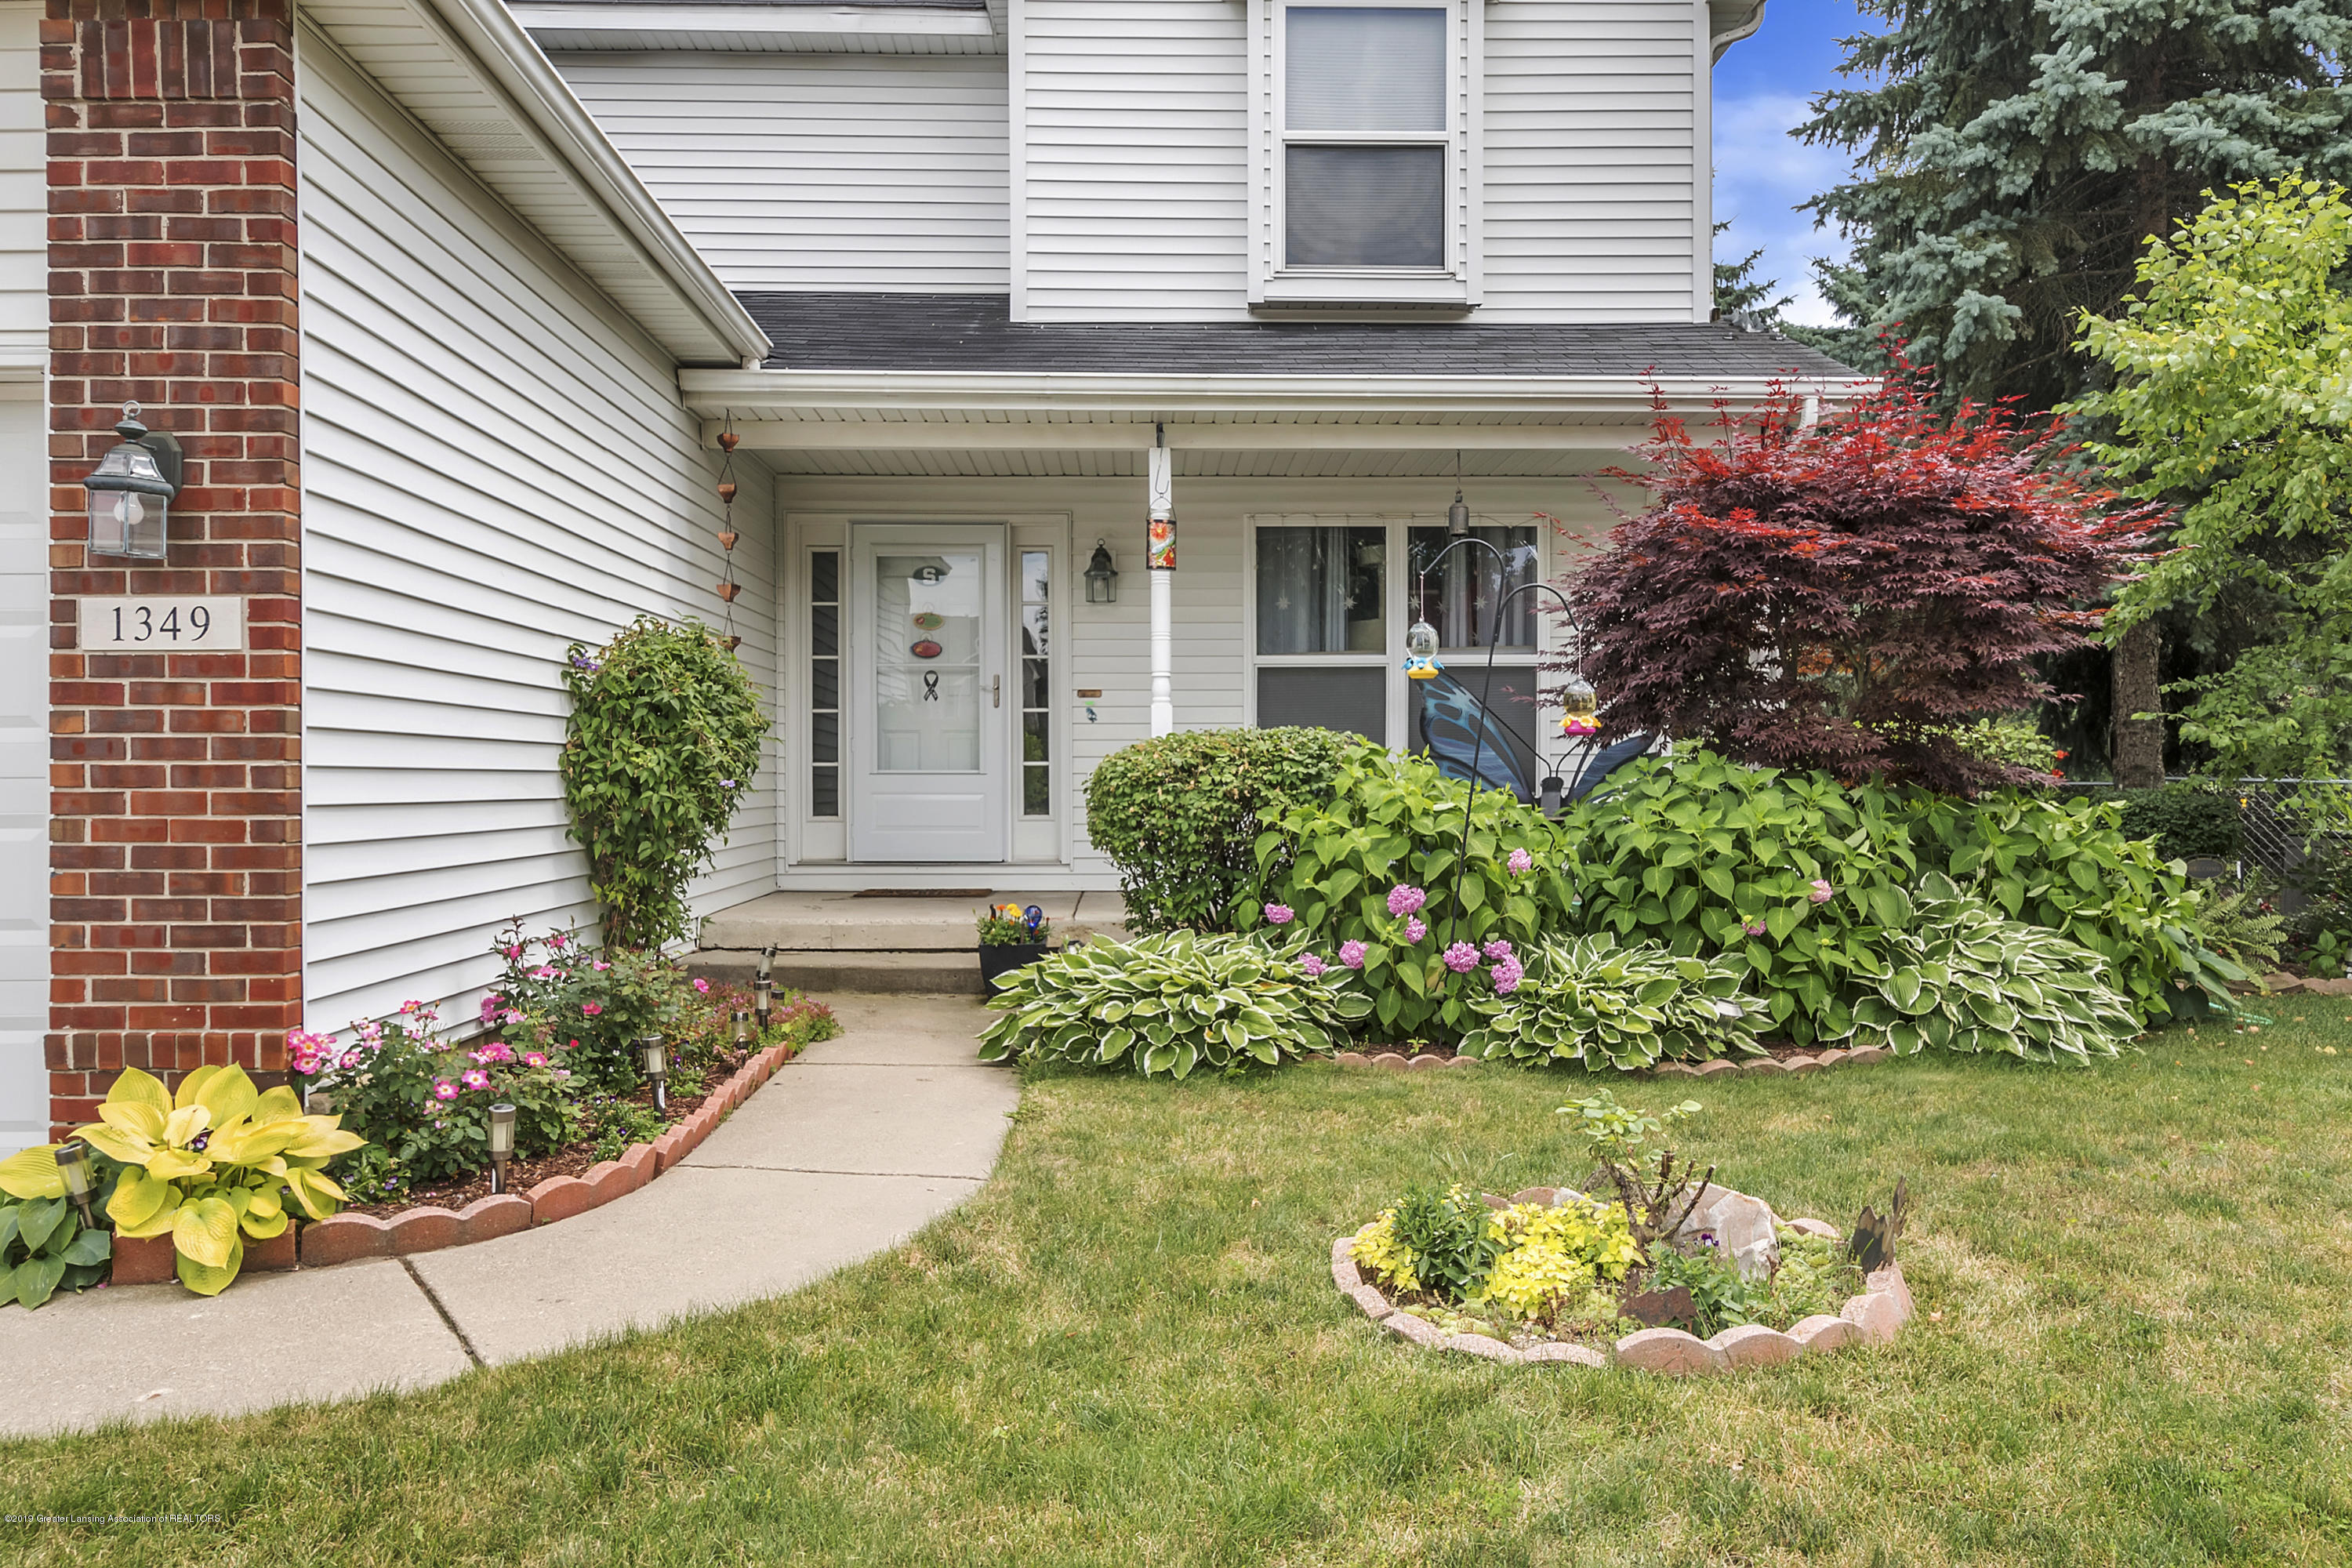 1349 Turtlecreek Cir - 1349-Turtlecreek-Cir-East-Lansing-window - 6